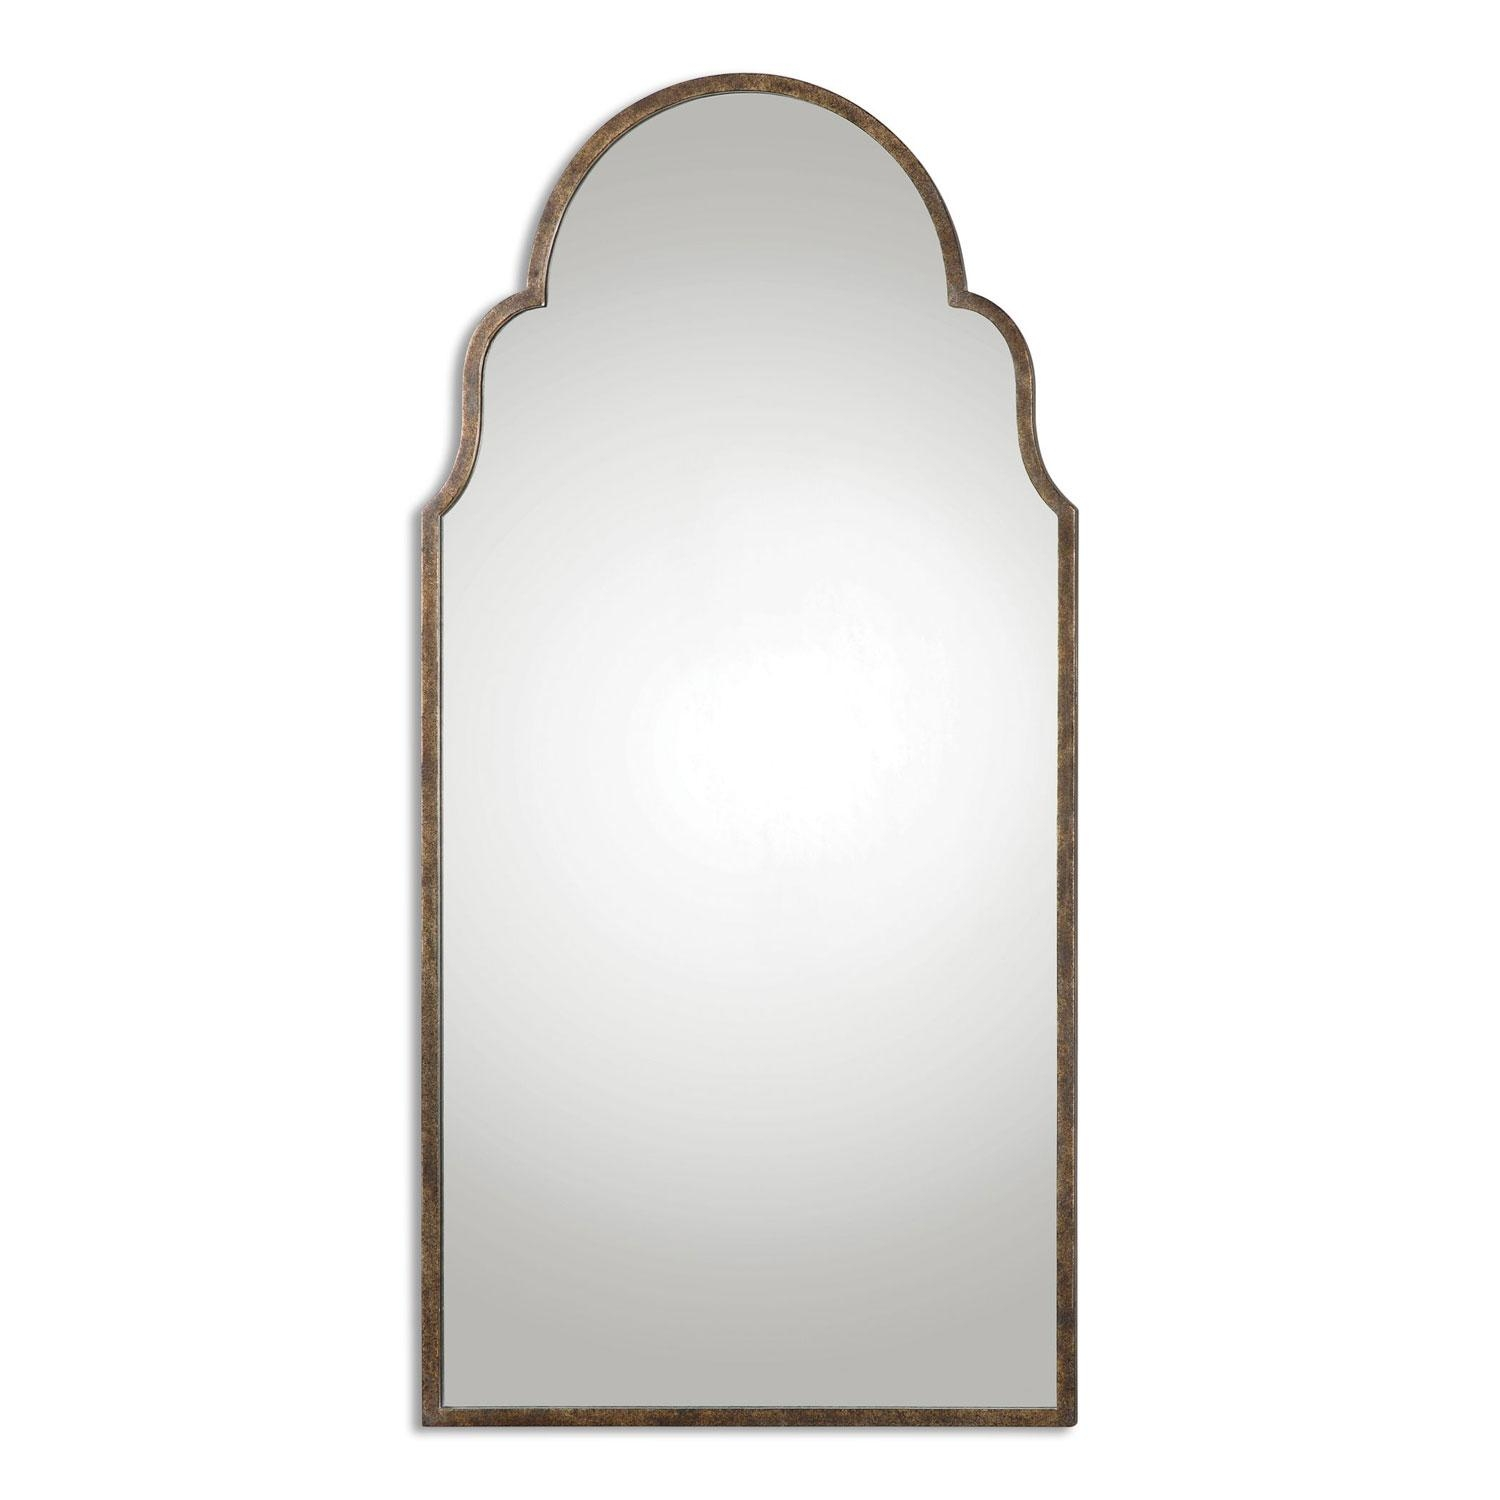 Kenitra Gold Arch Mirror Uttermost Wall Mirror Mirrors Home Decor Throughout Gold Arch Mirror (Image 10 of 20)